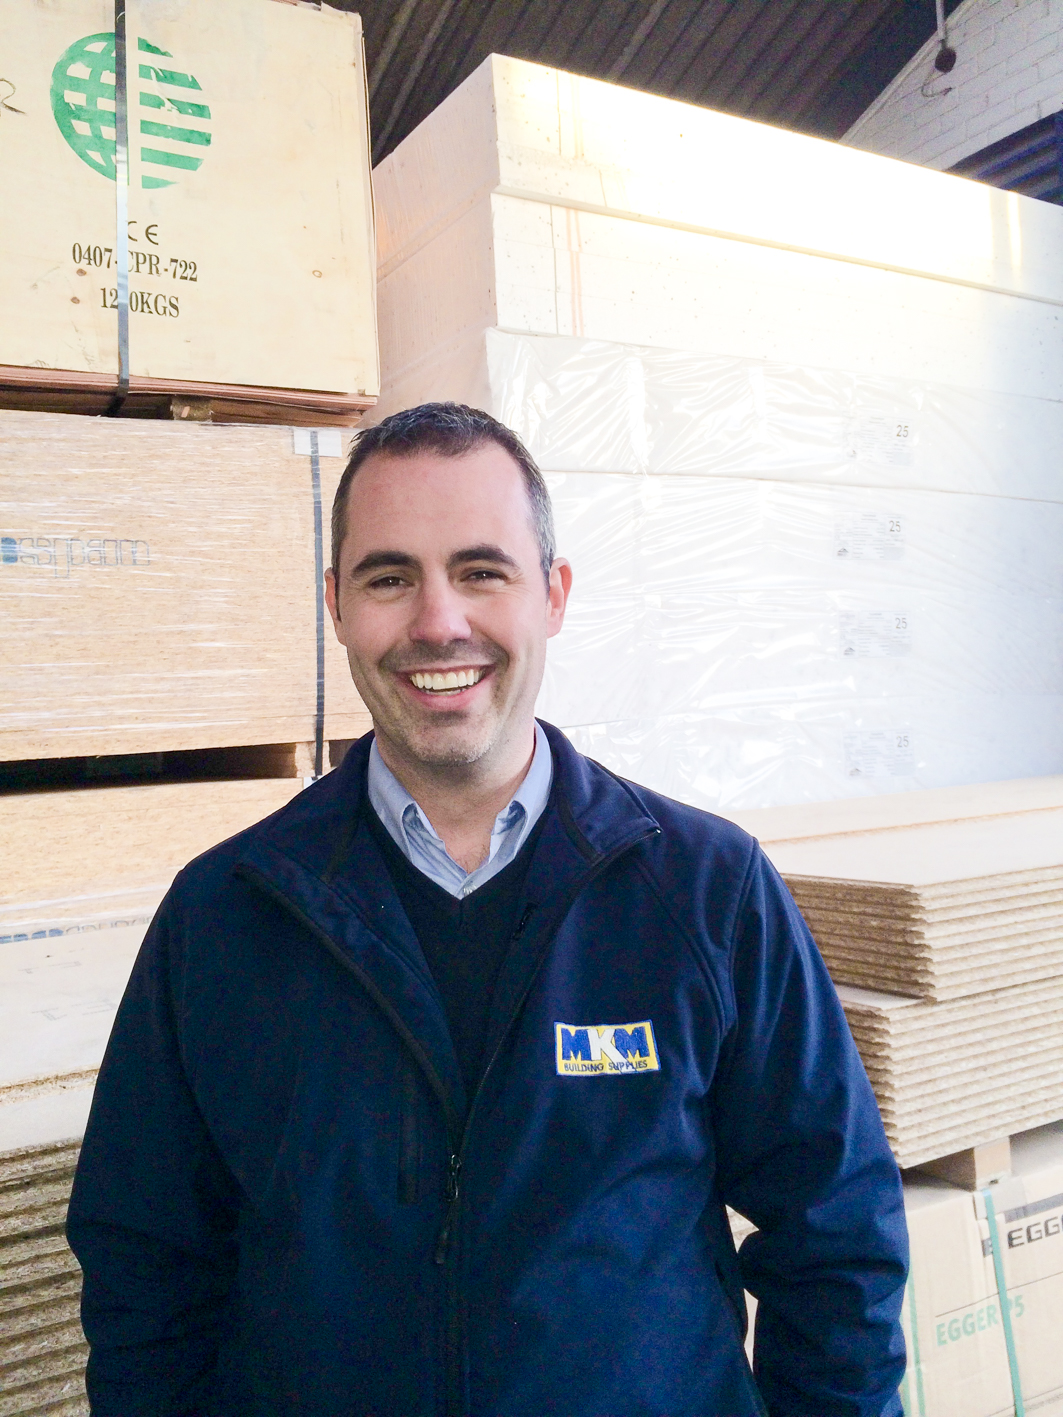 Scott McCabe, new branch manager of MKM Building Supplies in Redcar